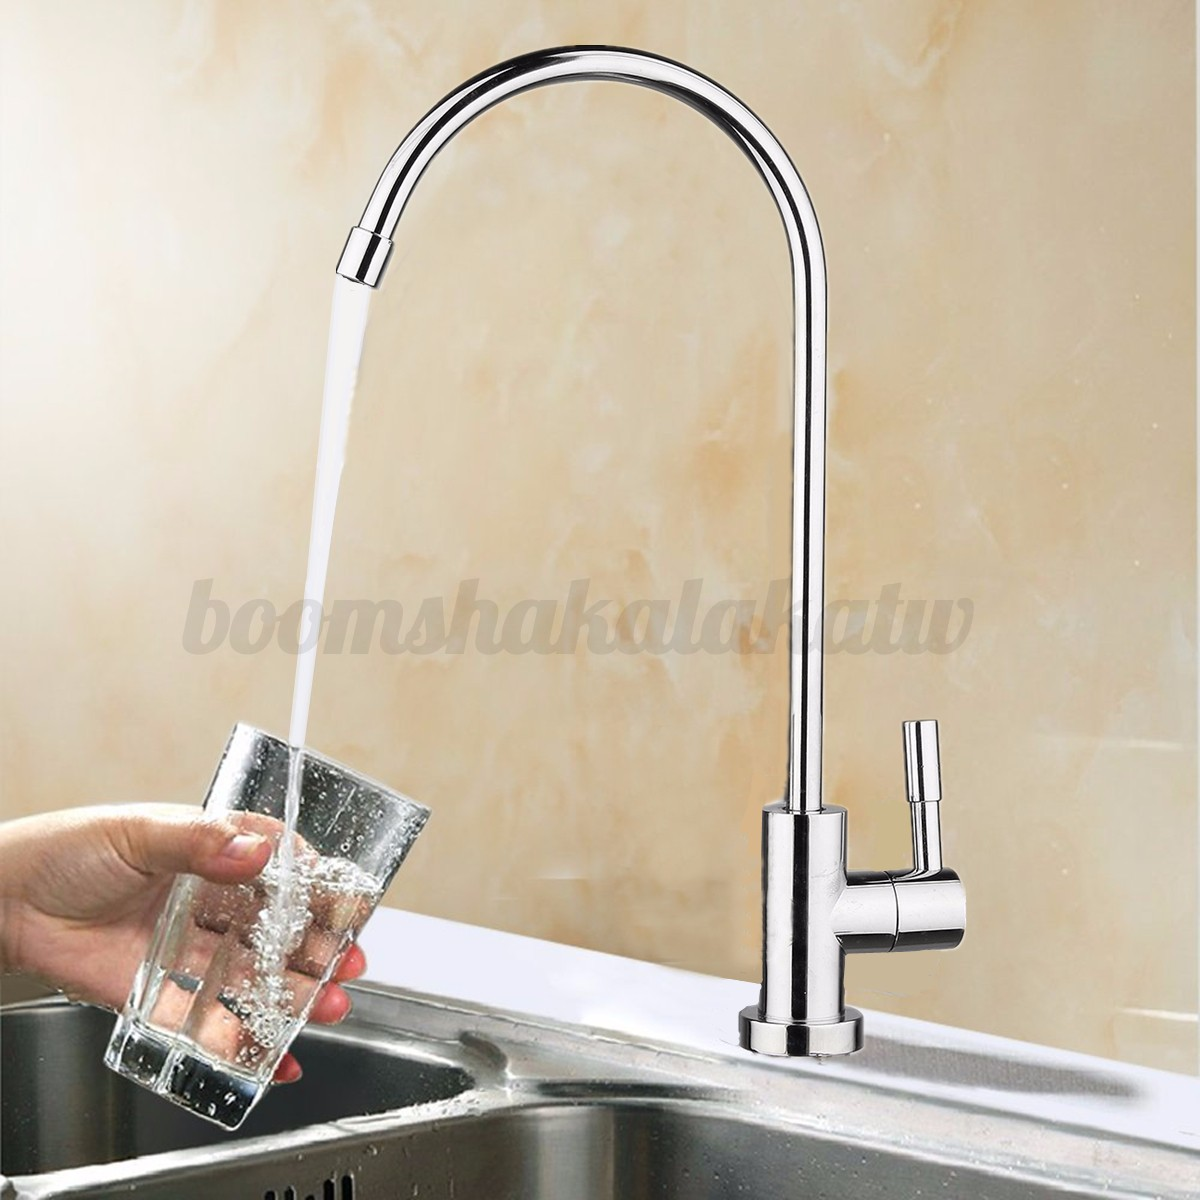 black tri ronda filter kitchen mixer flow chrome sink tap water swivel matte wholesale way product taps faucet rolya store